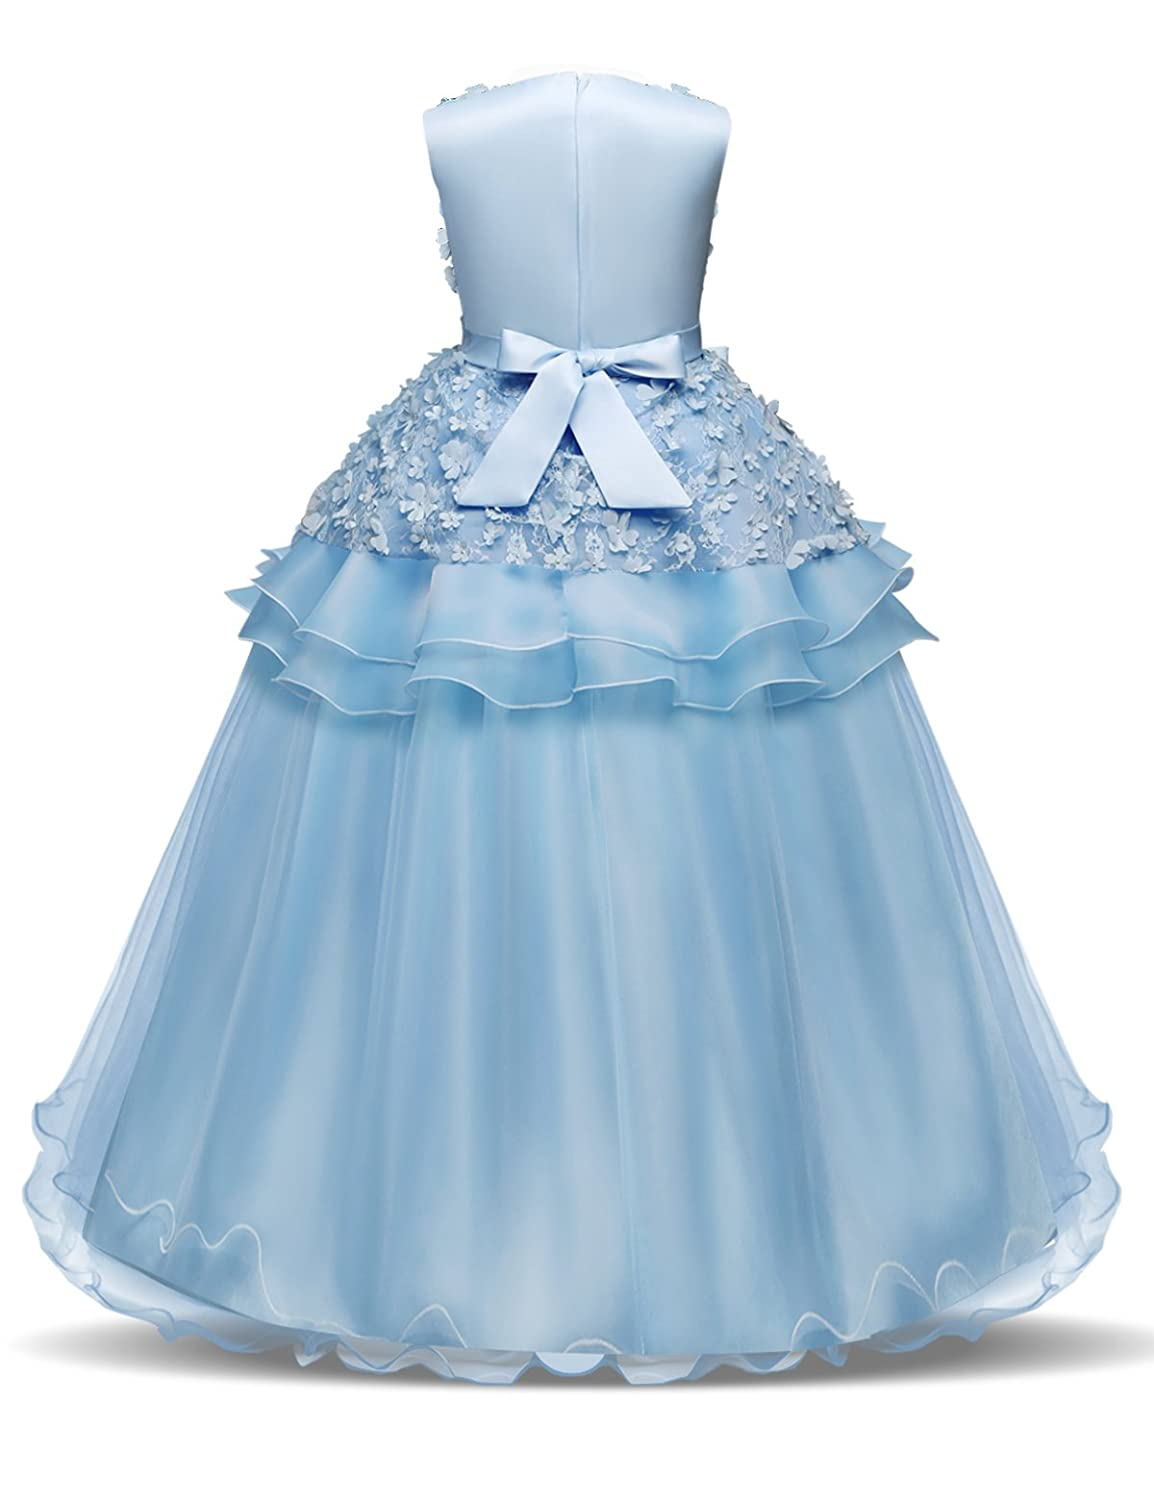 8683e8b35f Amazon.com  NNJXD Girl Sleeveless Embroidery Princess Pageant Dresses Kids  Prom Ball Gown  Clothing